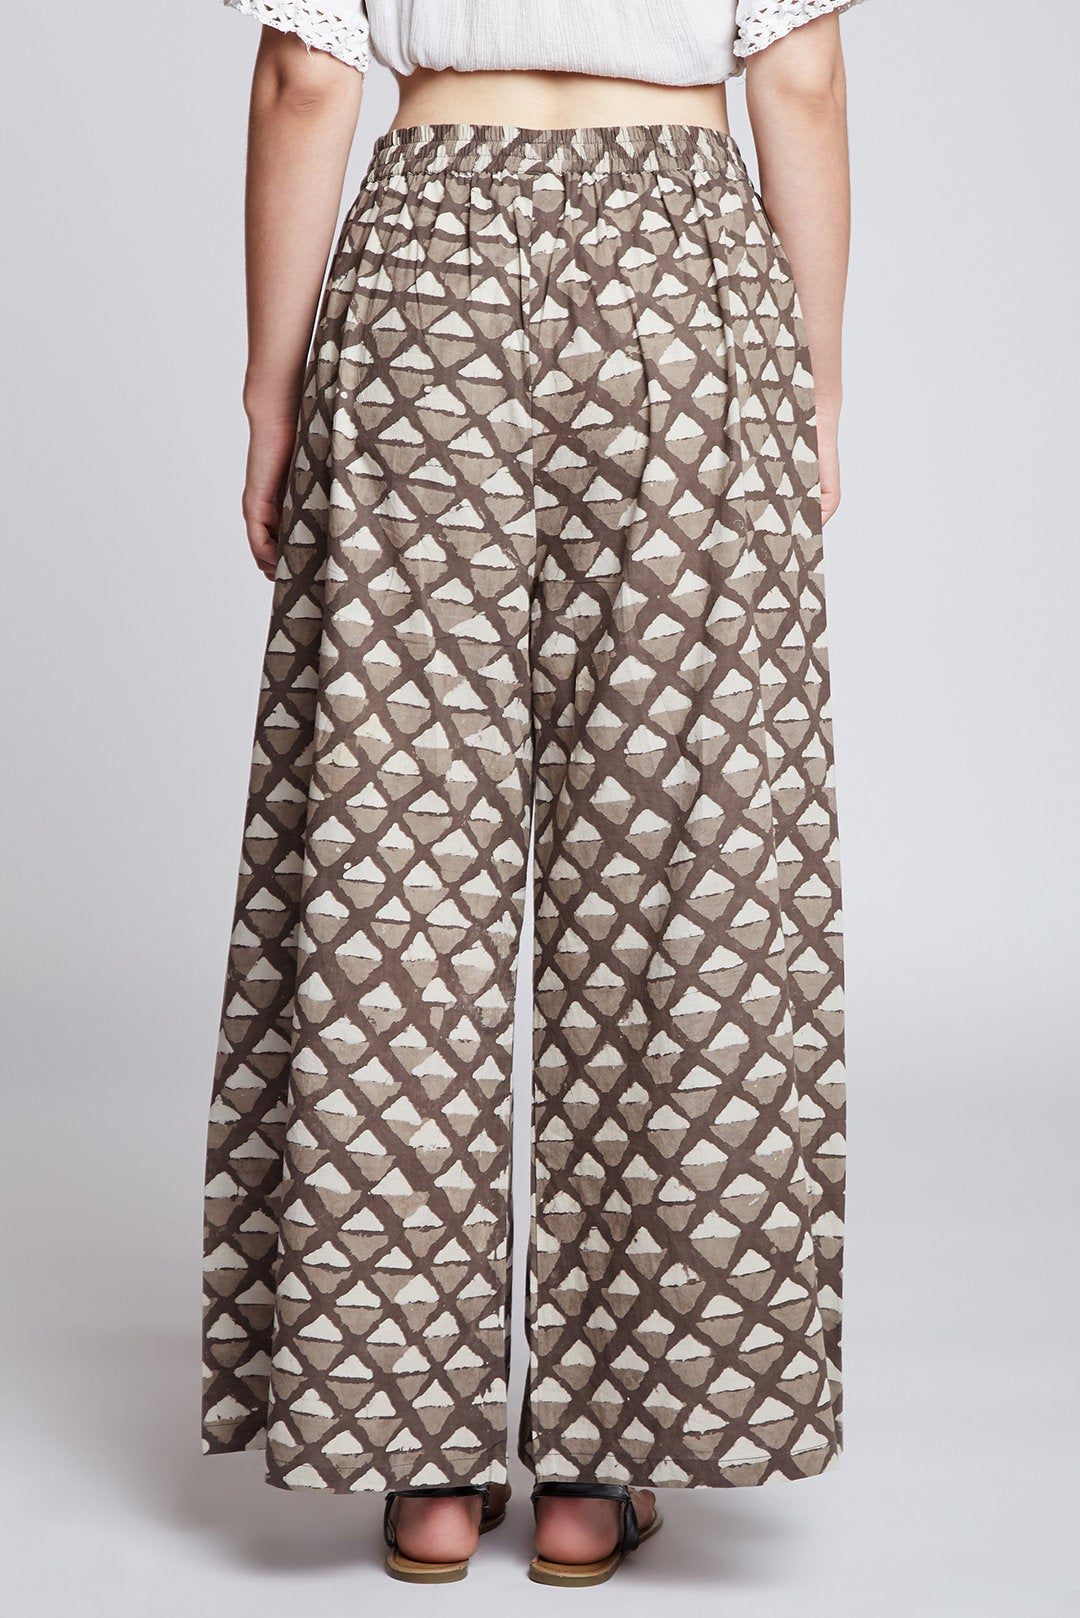 Dabu hand block printed cotton palazzo pants / flared pants